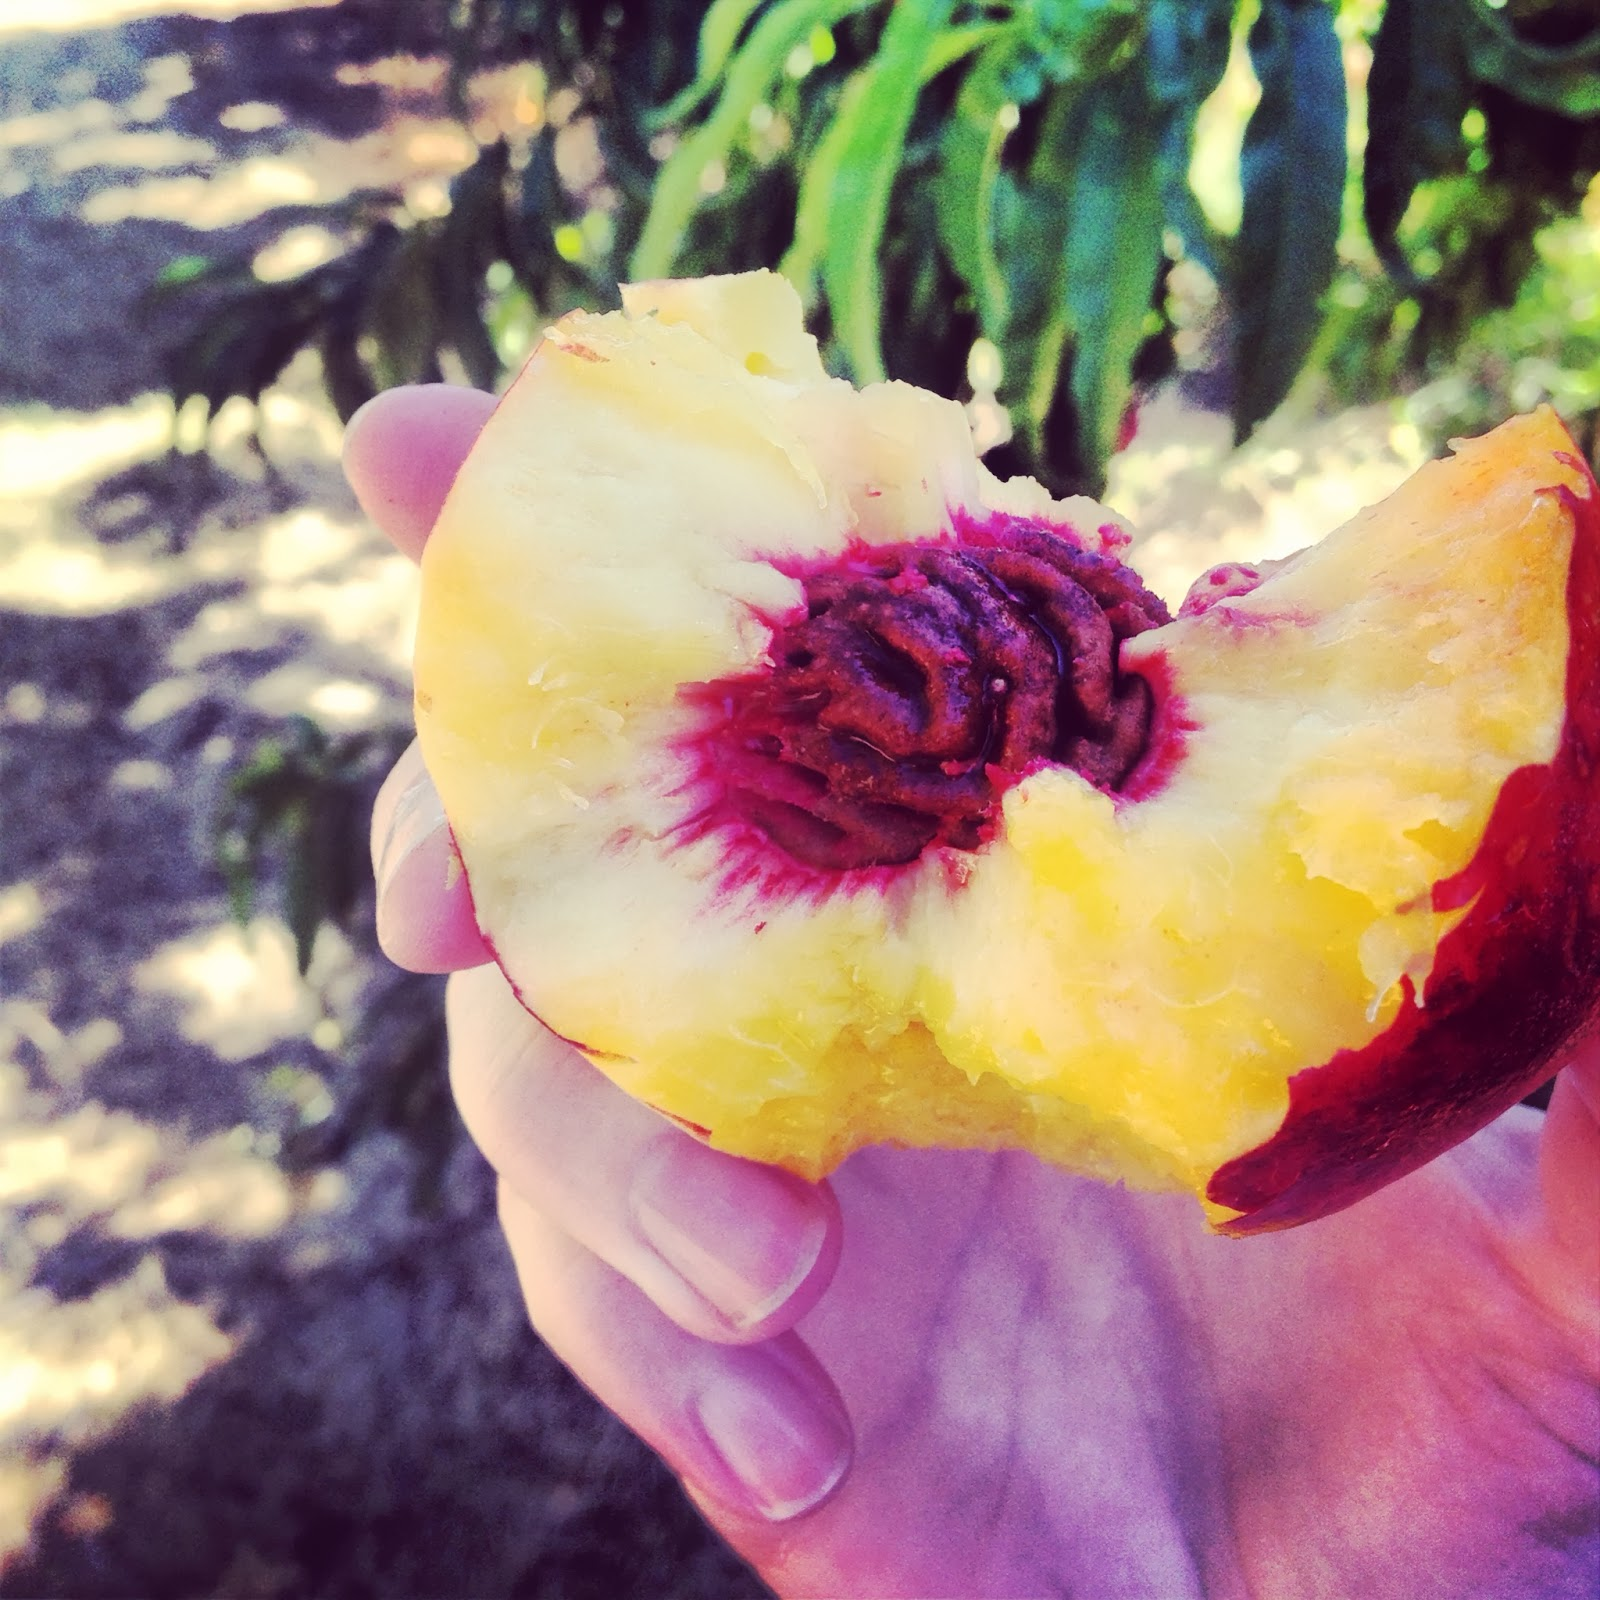 Kara got to eat several nectarines straight out of the field!